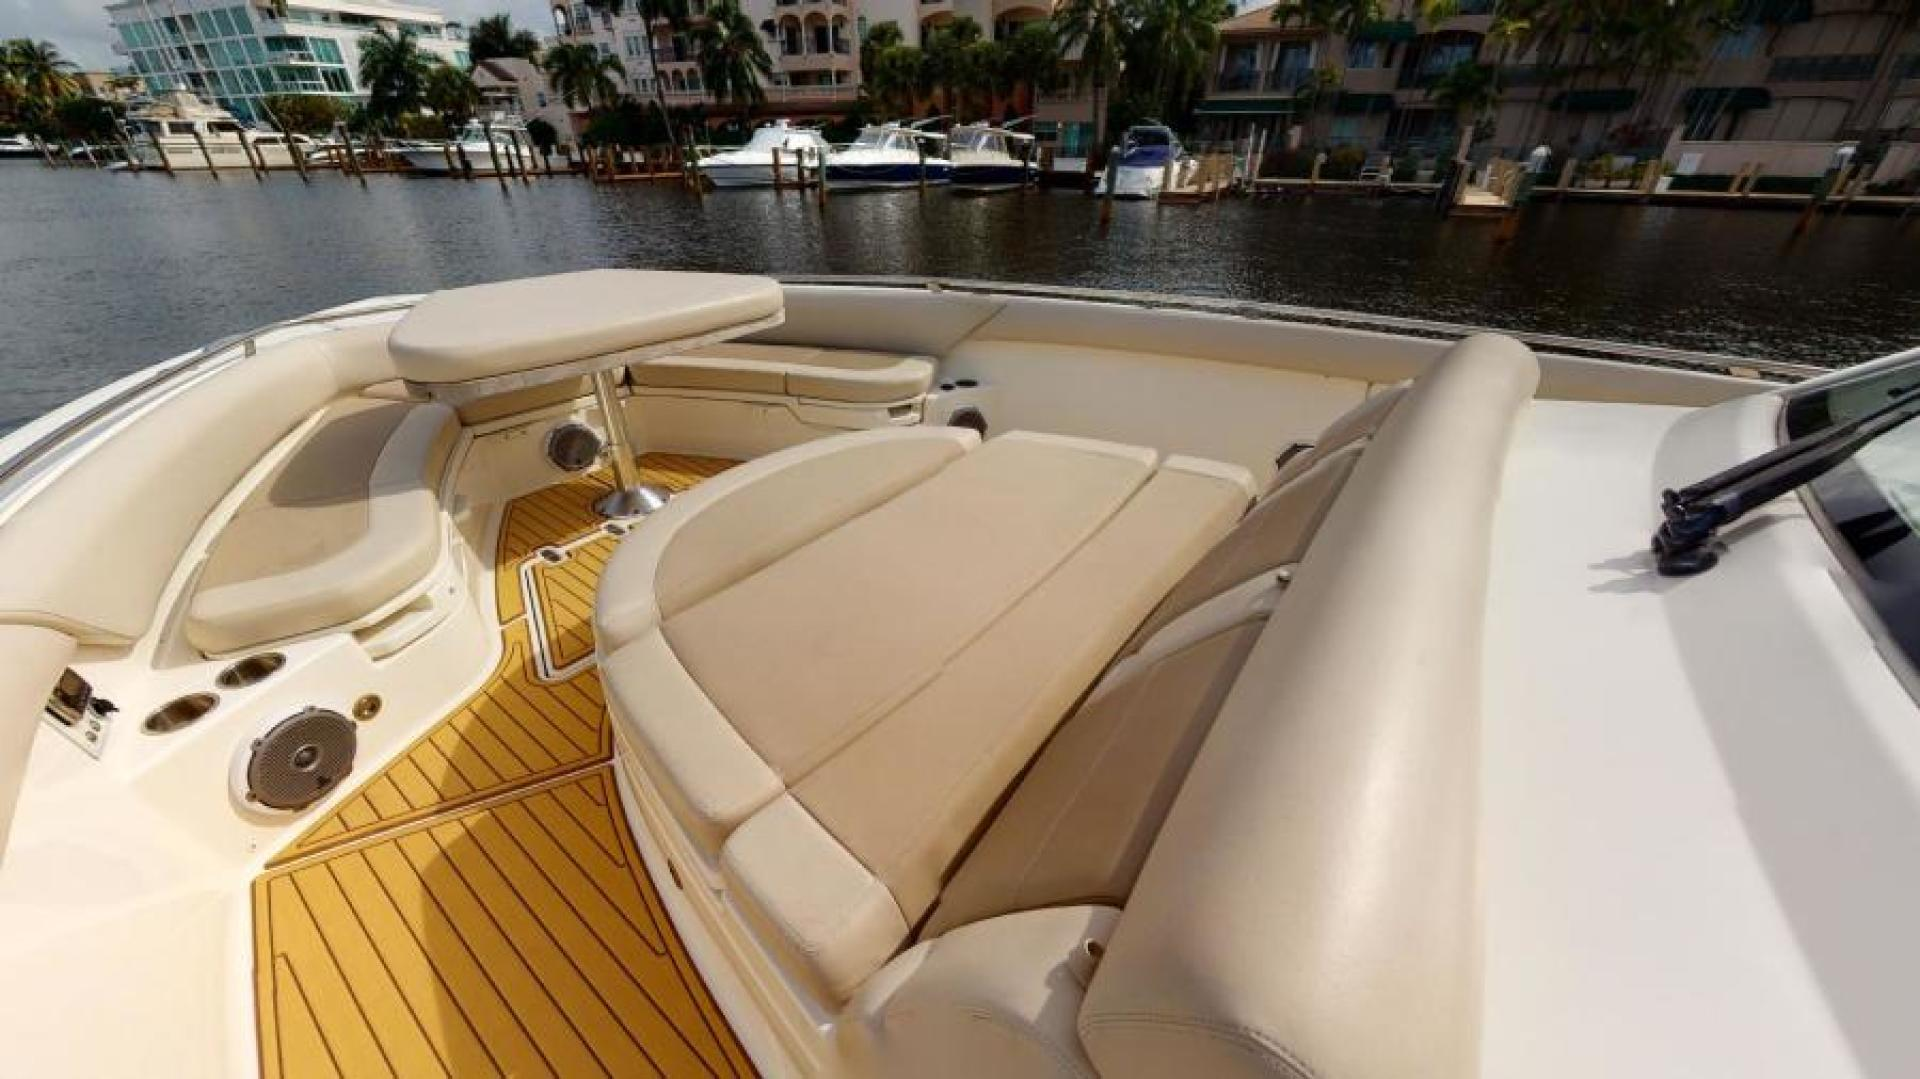 Boston Whaler-420 Outrage 2017-Boss Hawg Fort Lauderdale-Florida-United States-Bow-1513240 | Thumbnail